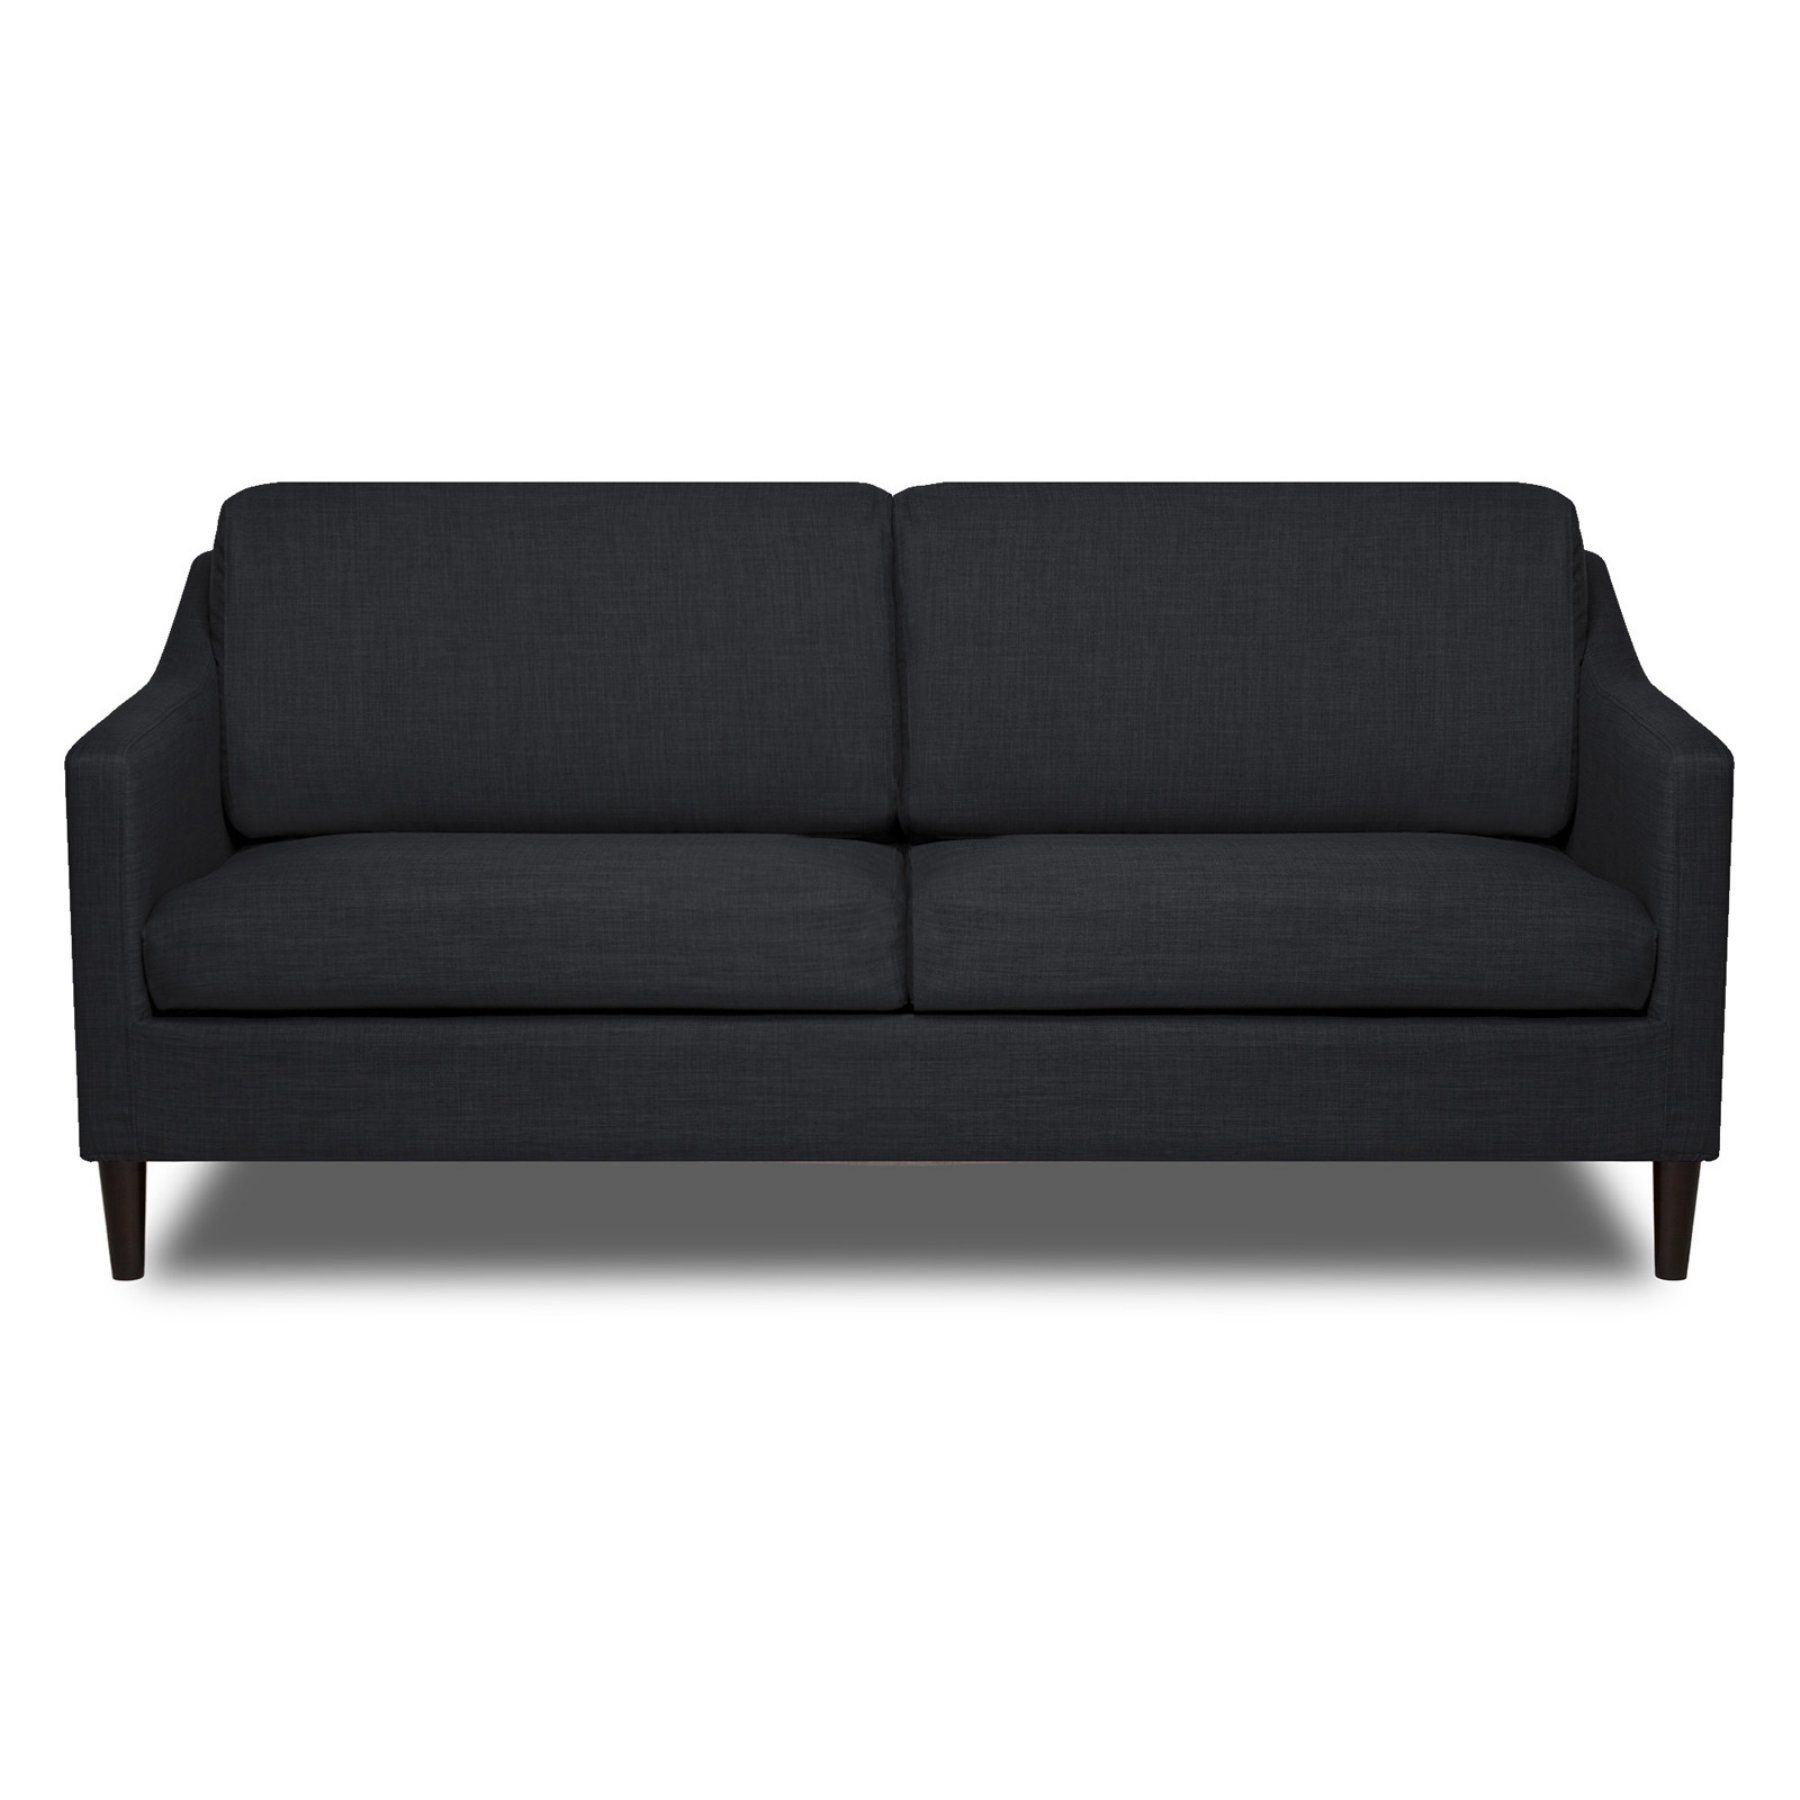 Dwell Home Sofa 2 Go Decker Sofa Sofa Home Black Sofa